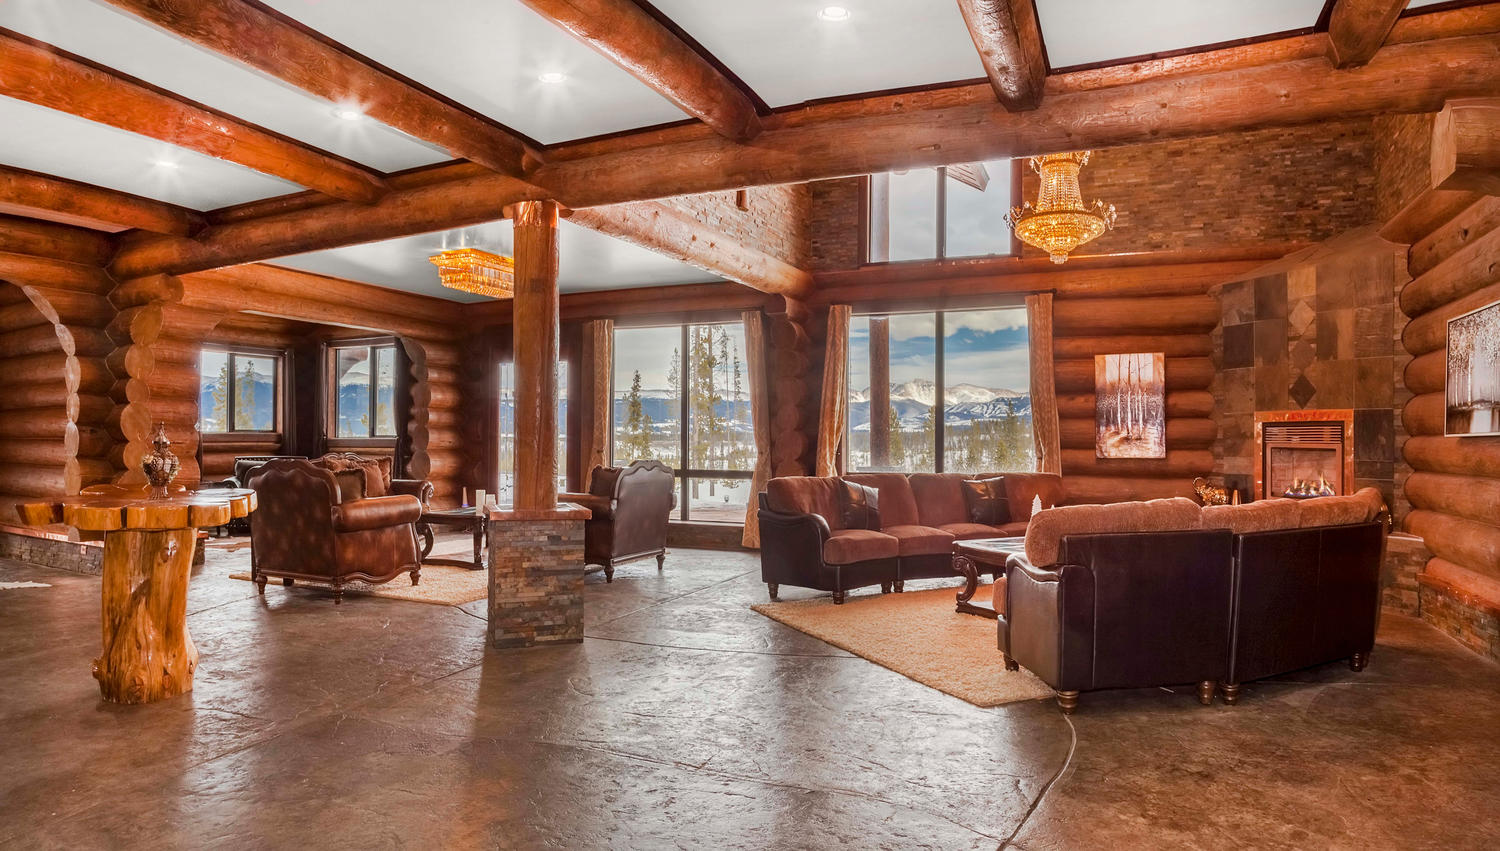 Single Family Home for Active at Incredible Energy Efficient Log Estate 119 E Elk Meadows Dr Tabernash, Colorado 80478 United States